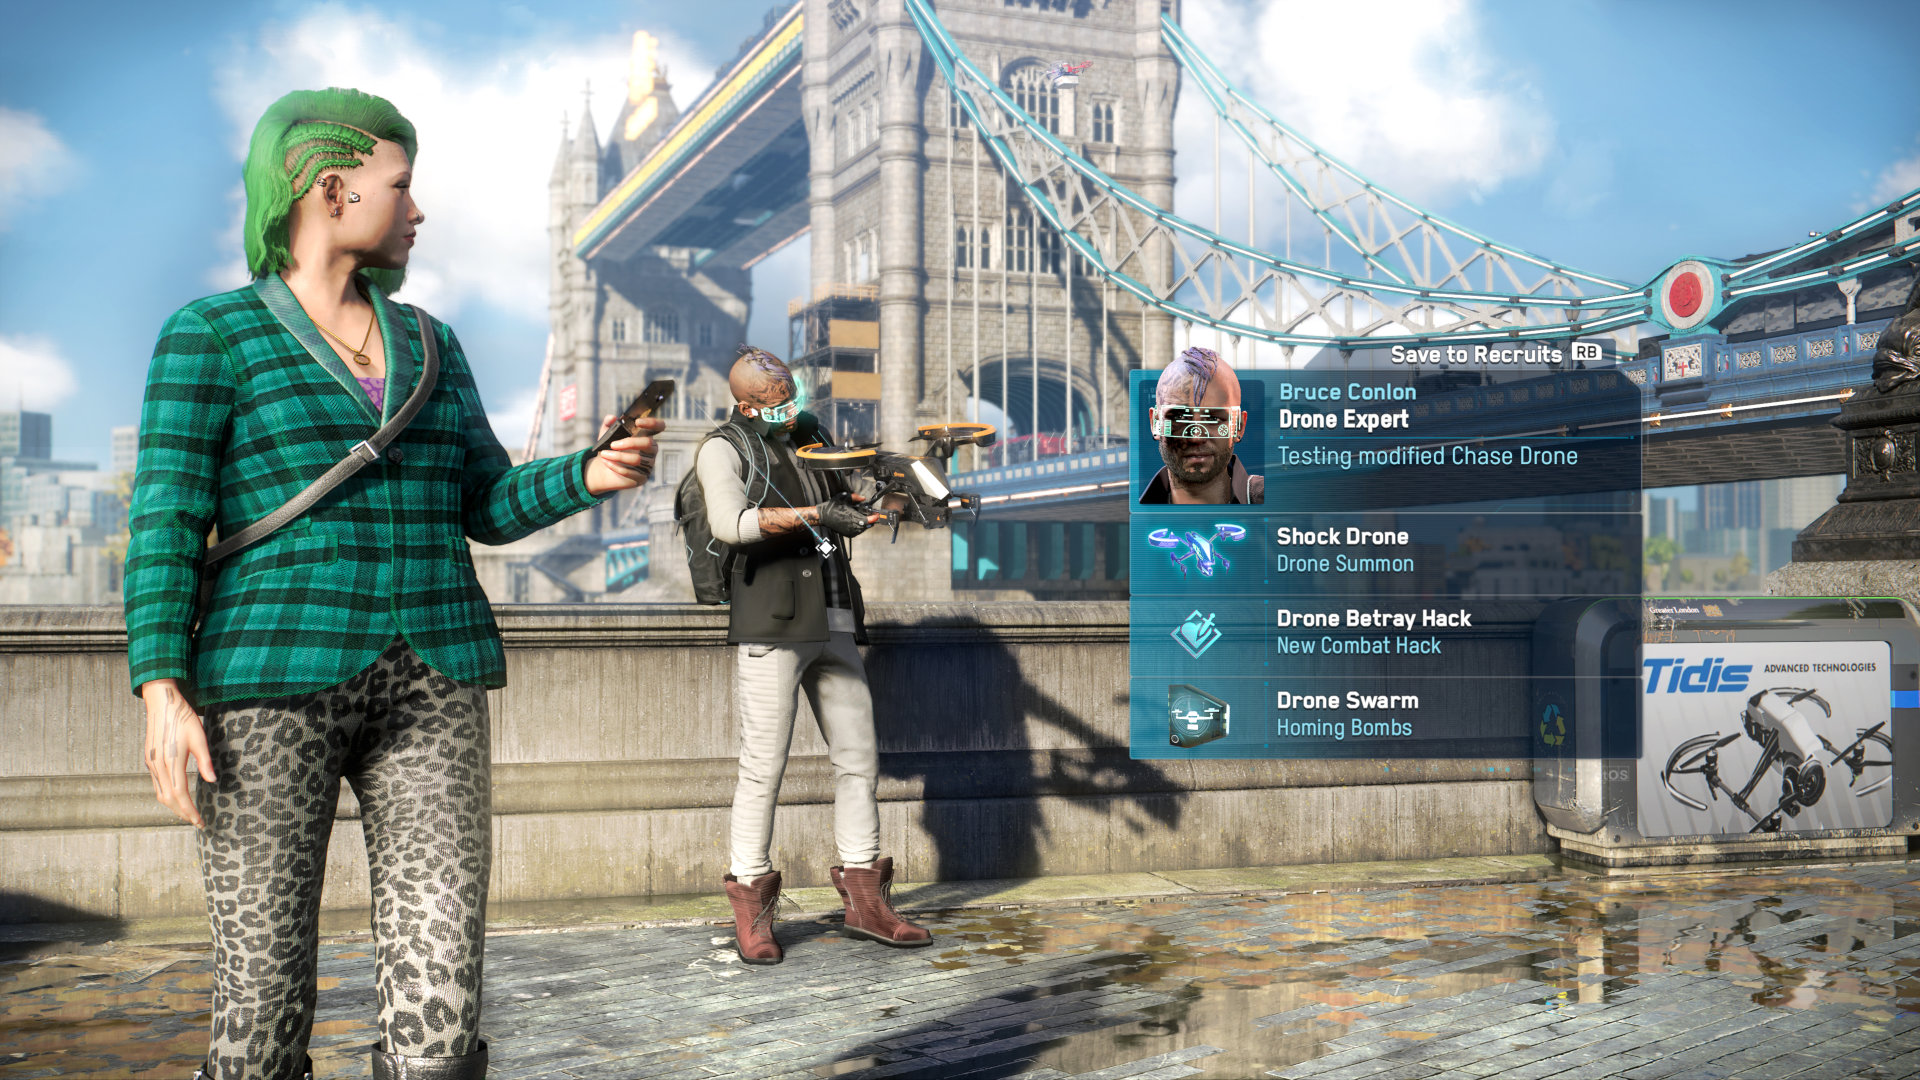 Scanning a potential recruit in a Watch Dogs: Legion screenshot.